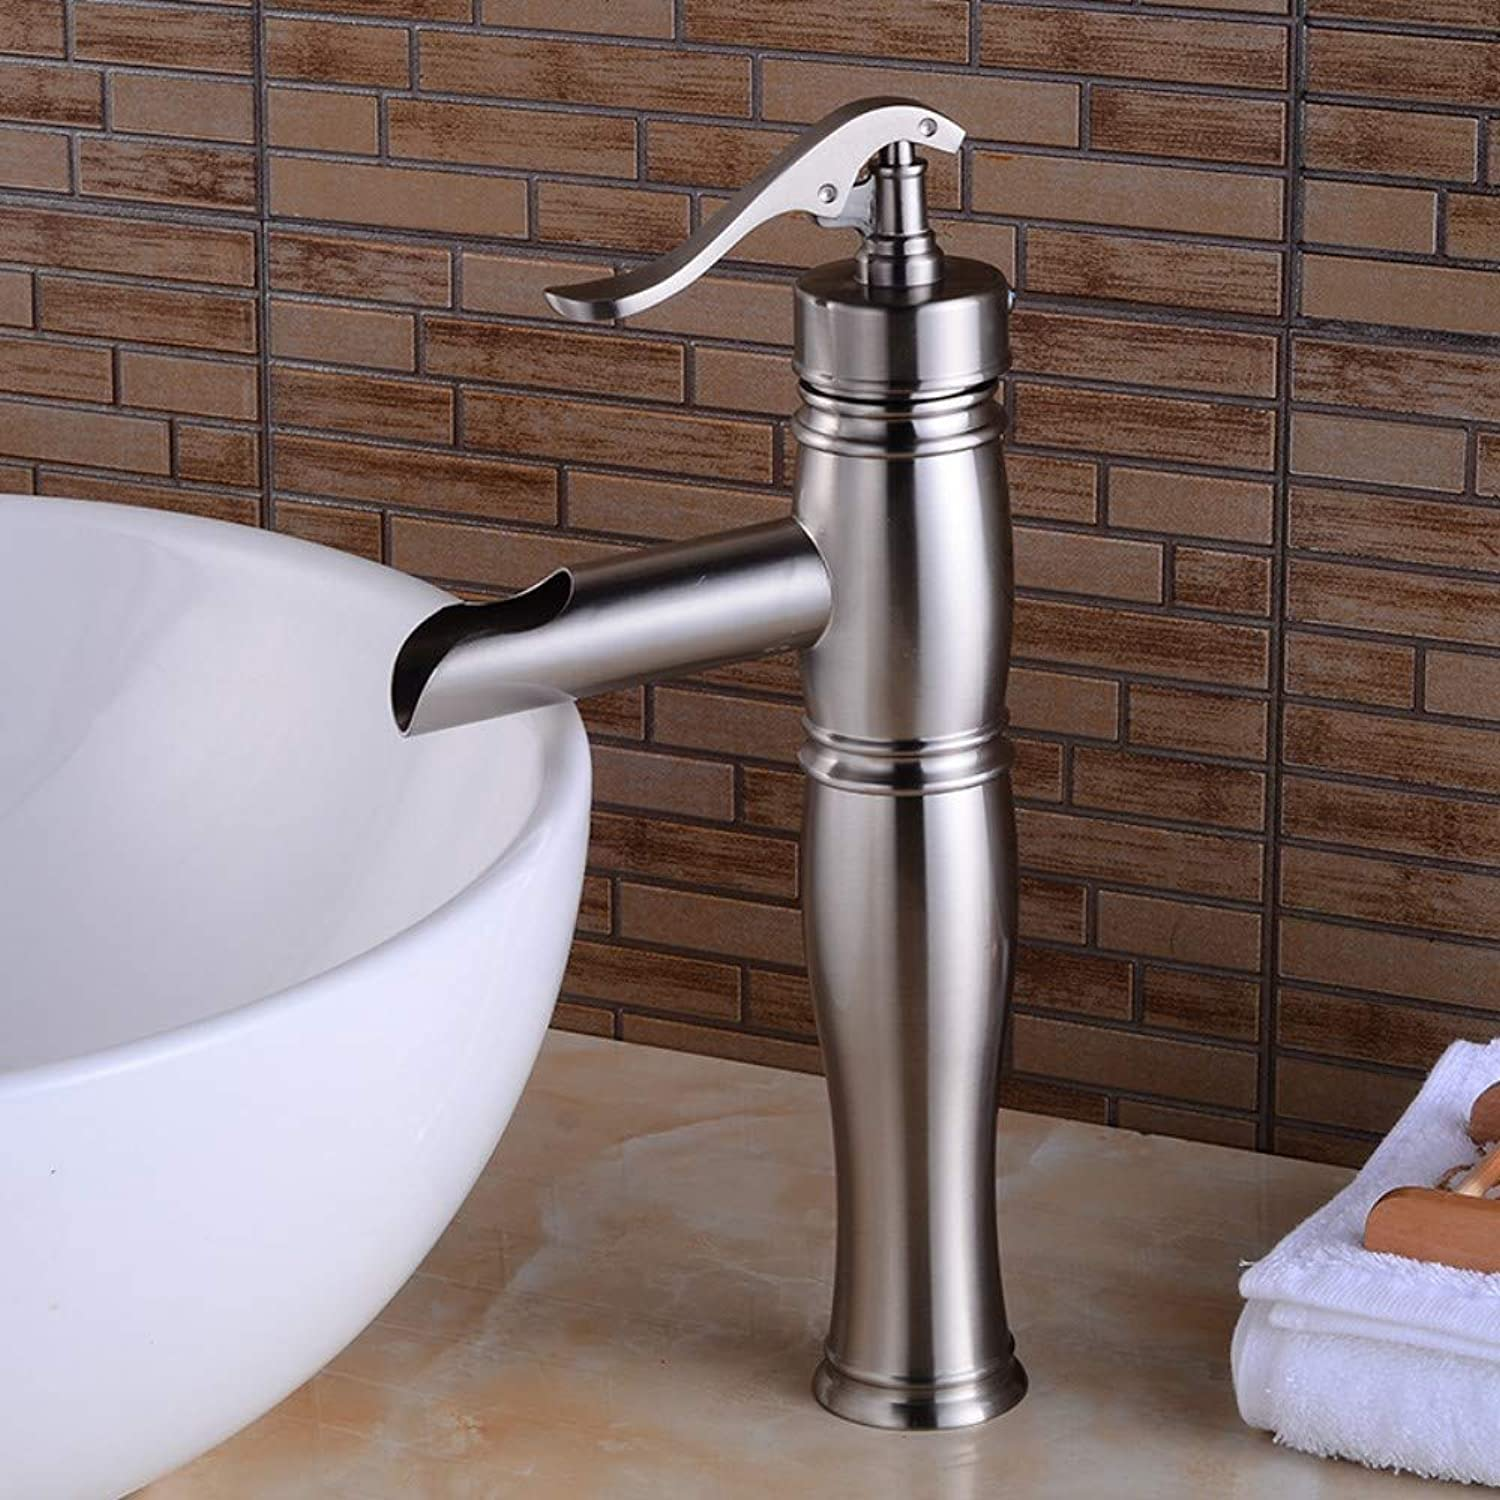 Chrome-Plated Brass Kitchen Faucet Bathroom Basin Faucet Copper Faucet Kitchen Bathroom Bathroom Lift Faucet